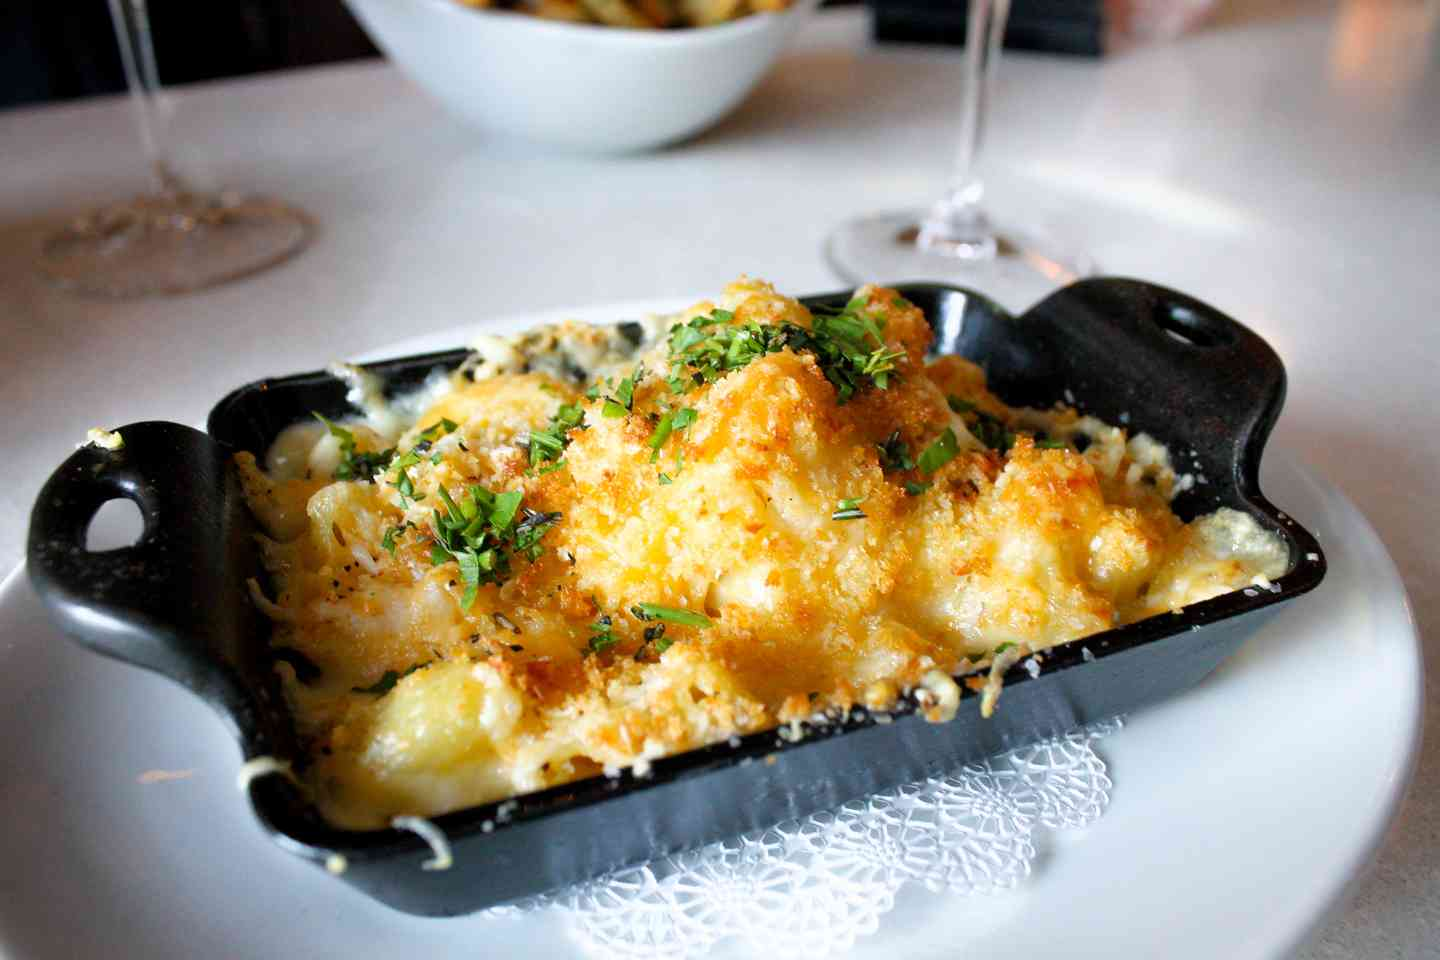 Baked Skillet of Mac & Cheese